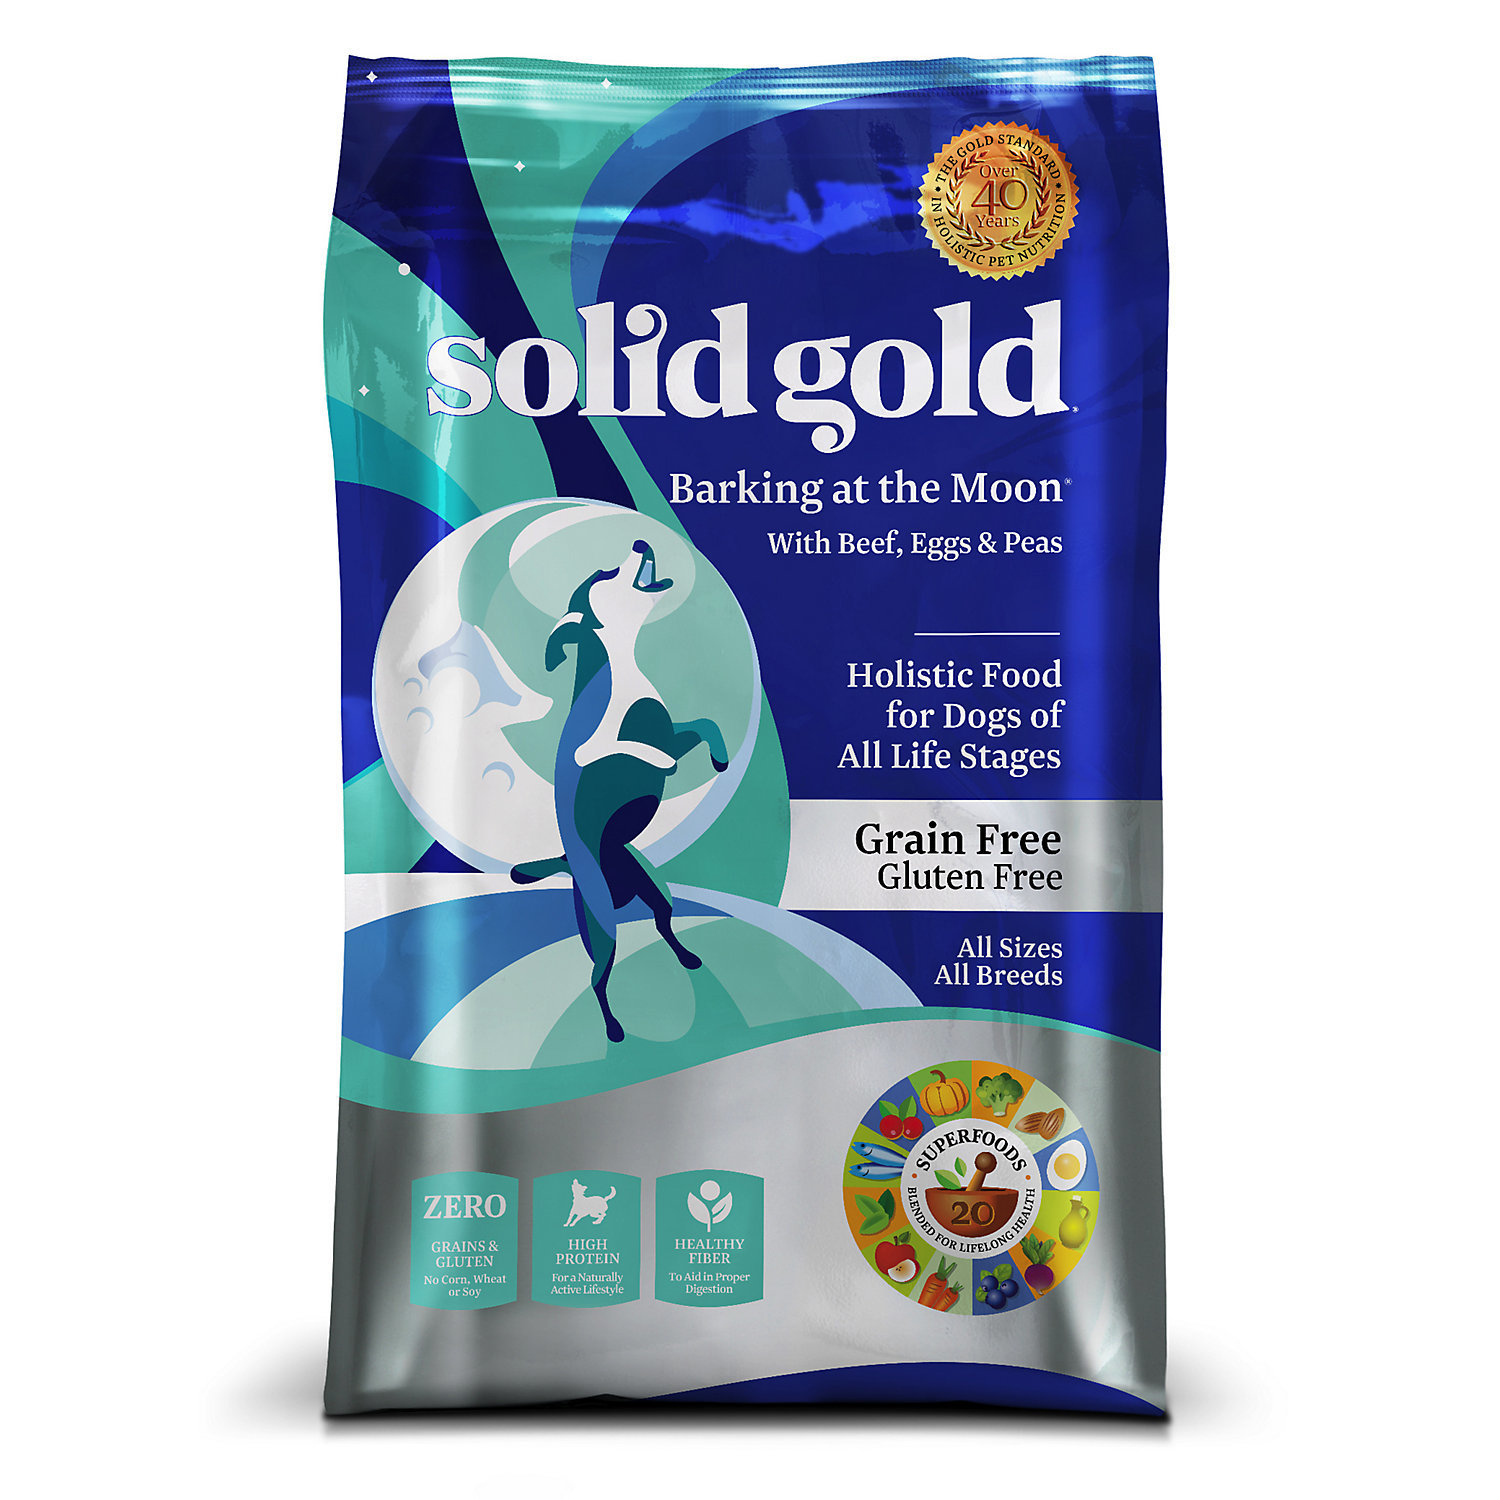 Solid Gold Barking at the Moon Beef, Egg & Peas Grain Free Adult Dog Food, 24 lb (10/18) (A.F3)